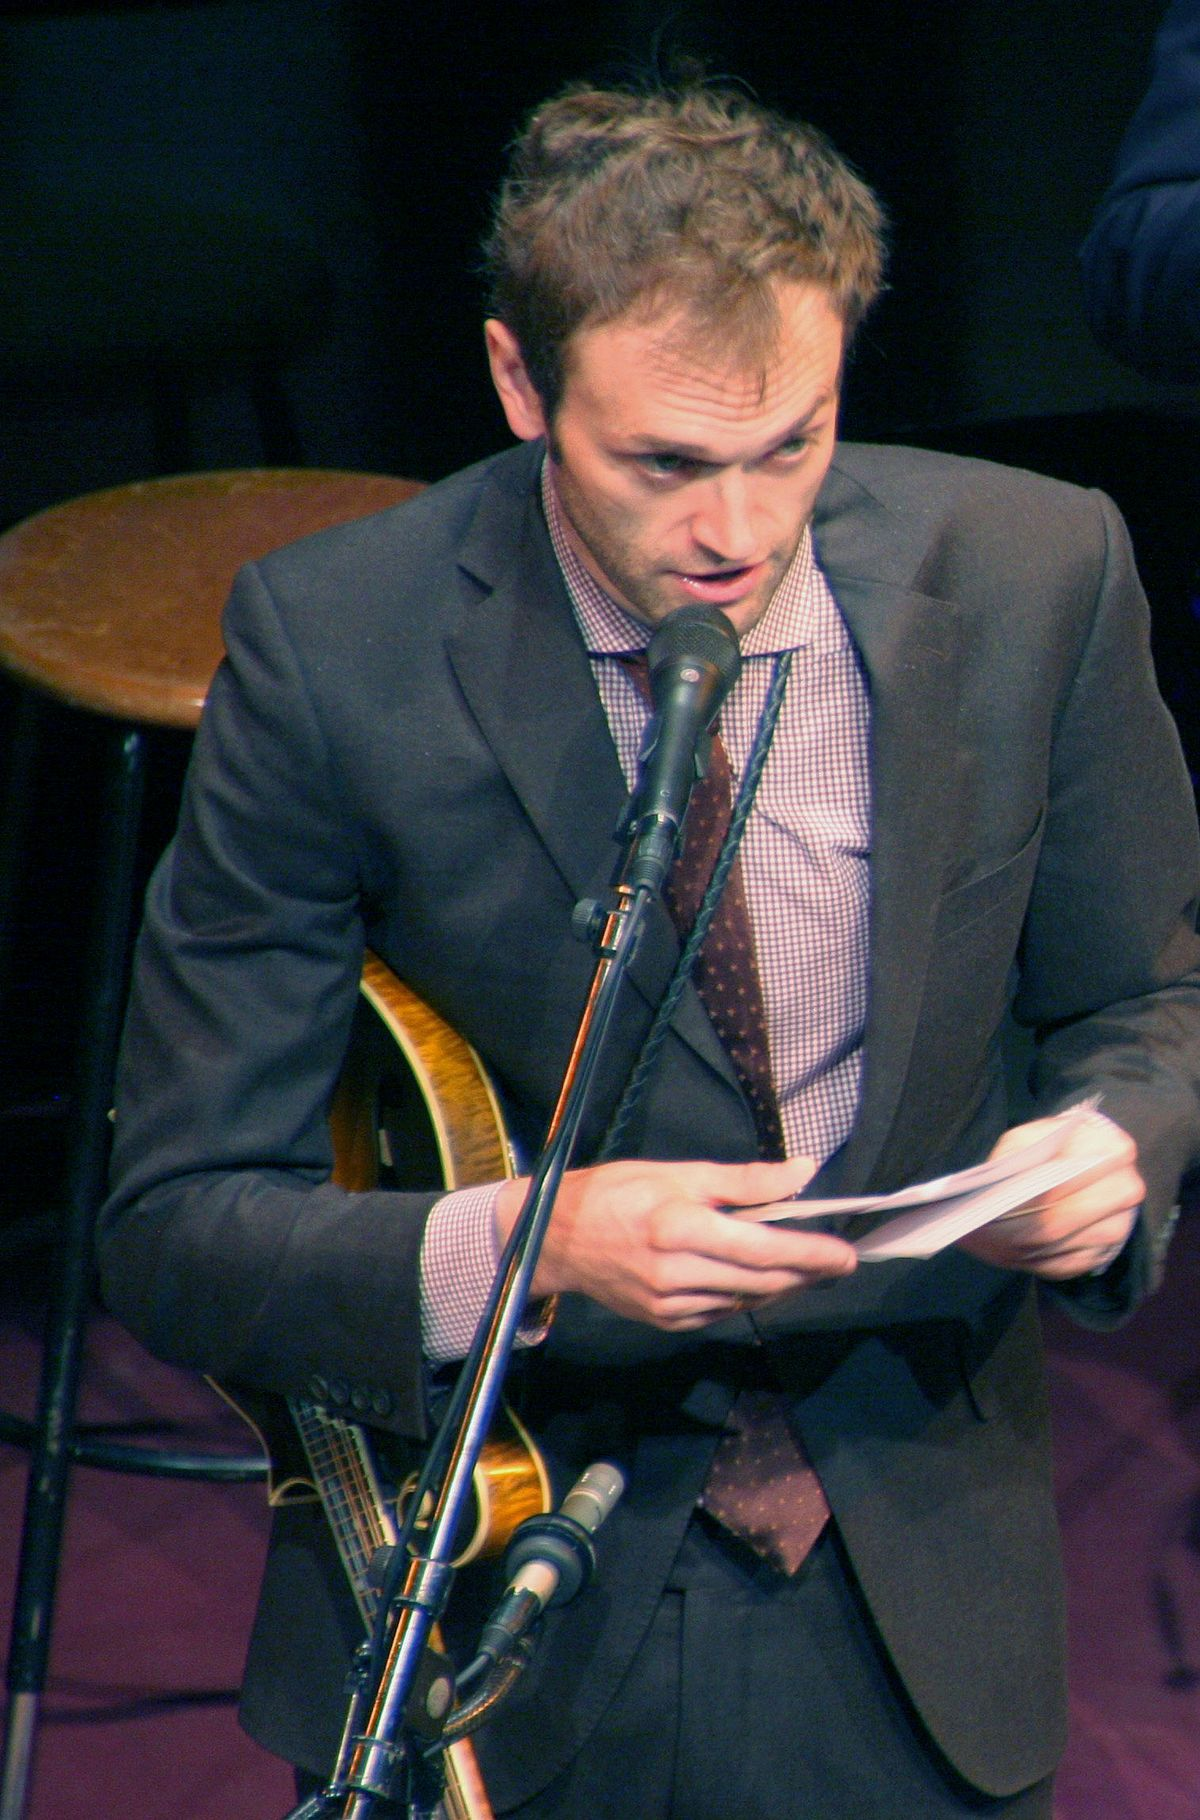 Chris Thile Wikipedia